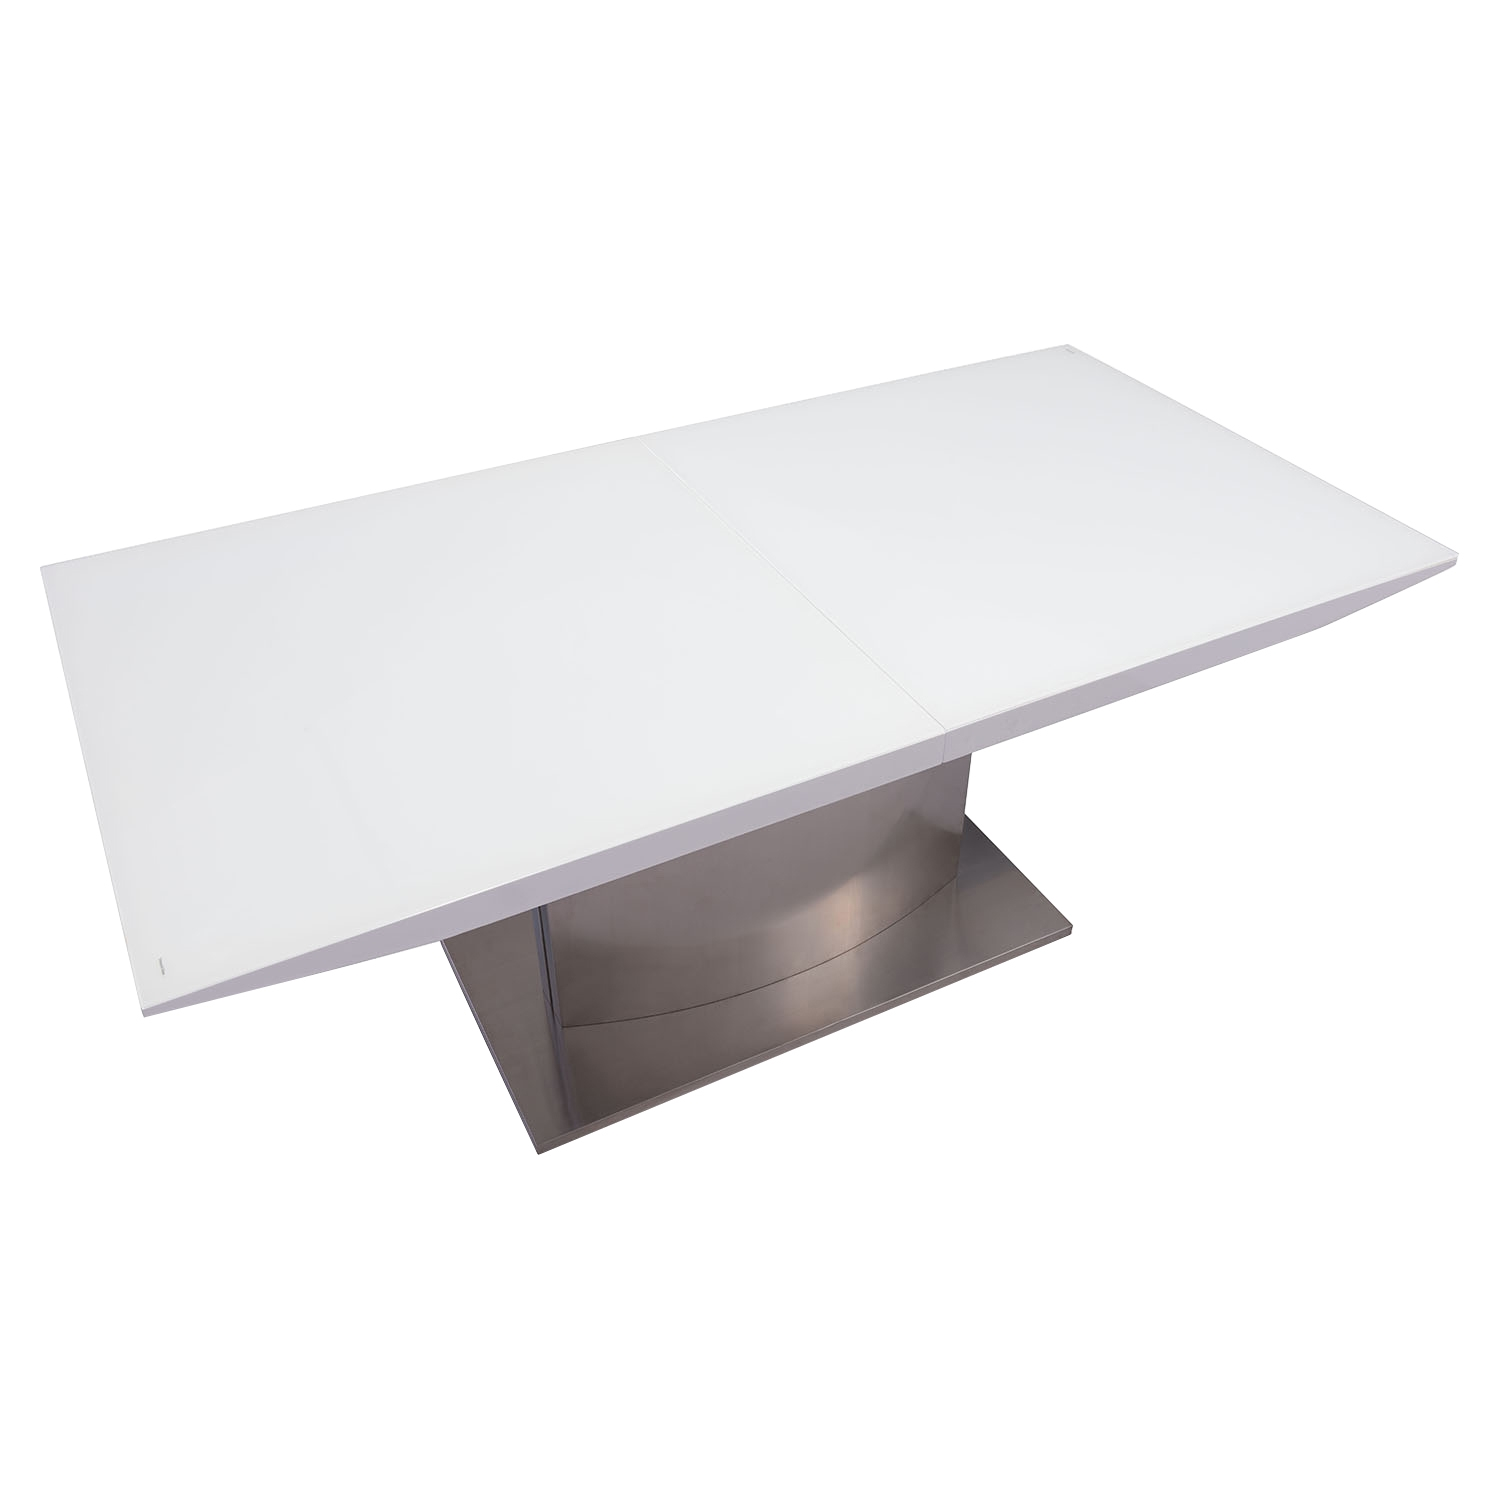 Pierrefronds Extension Dining Table - White - ZM-107860